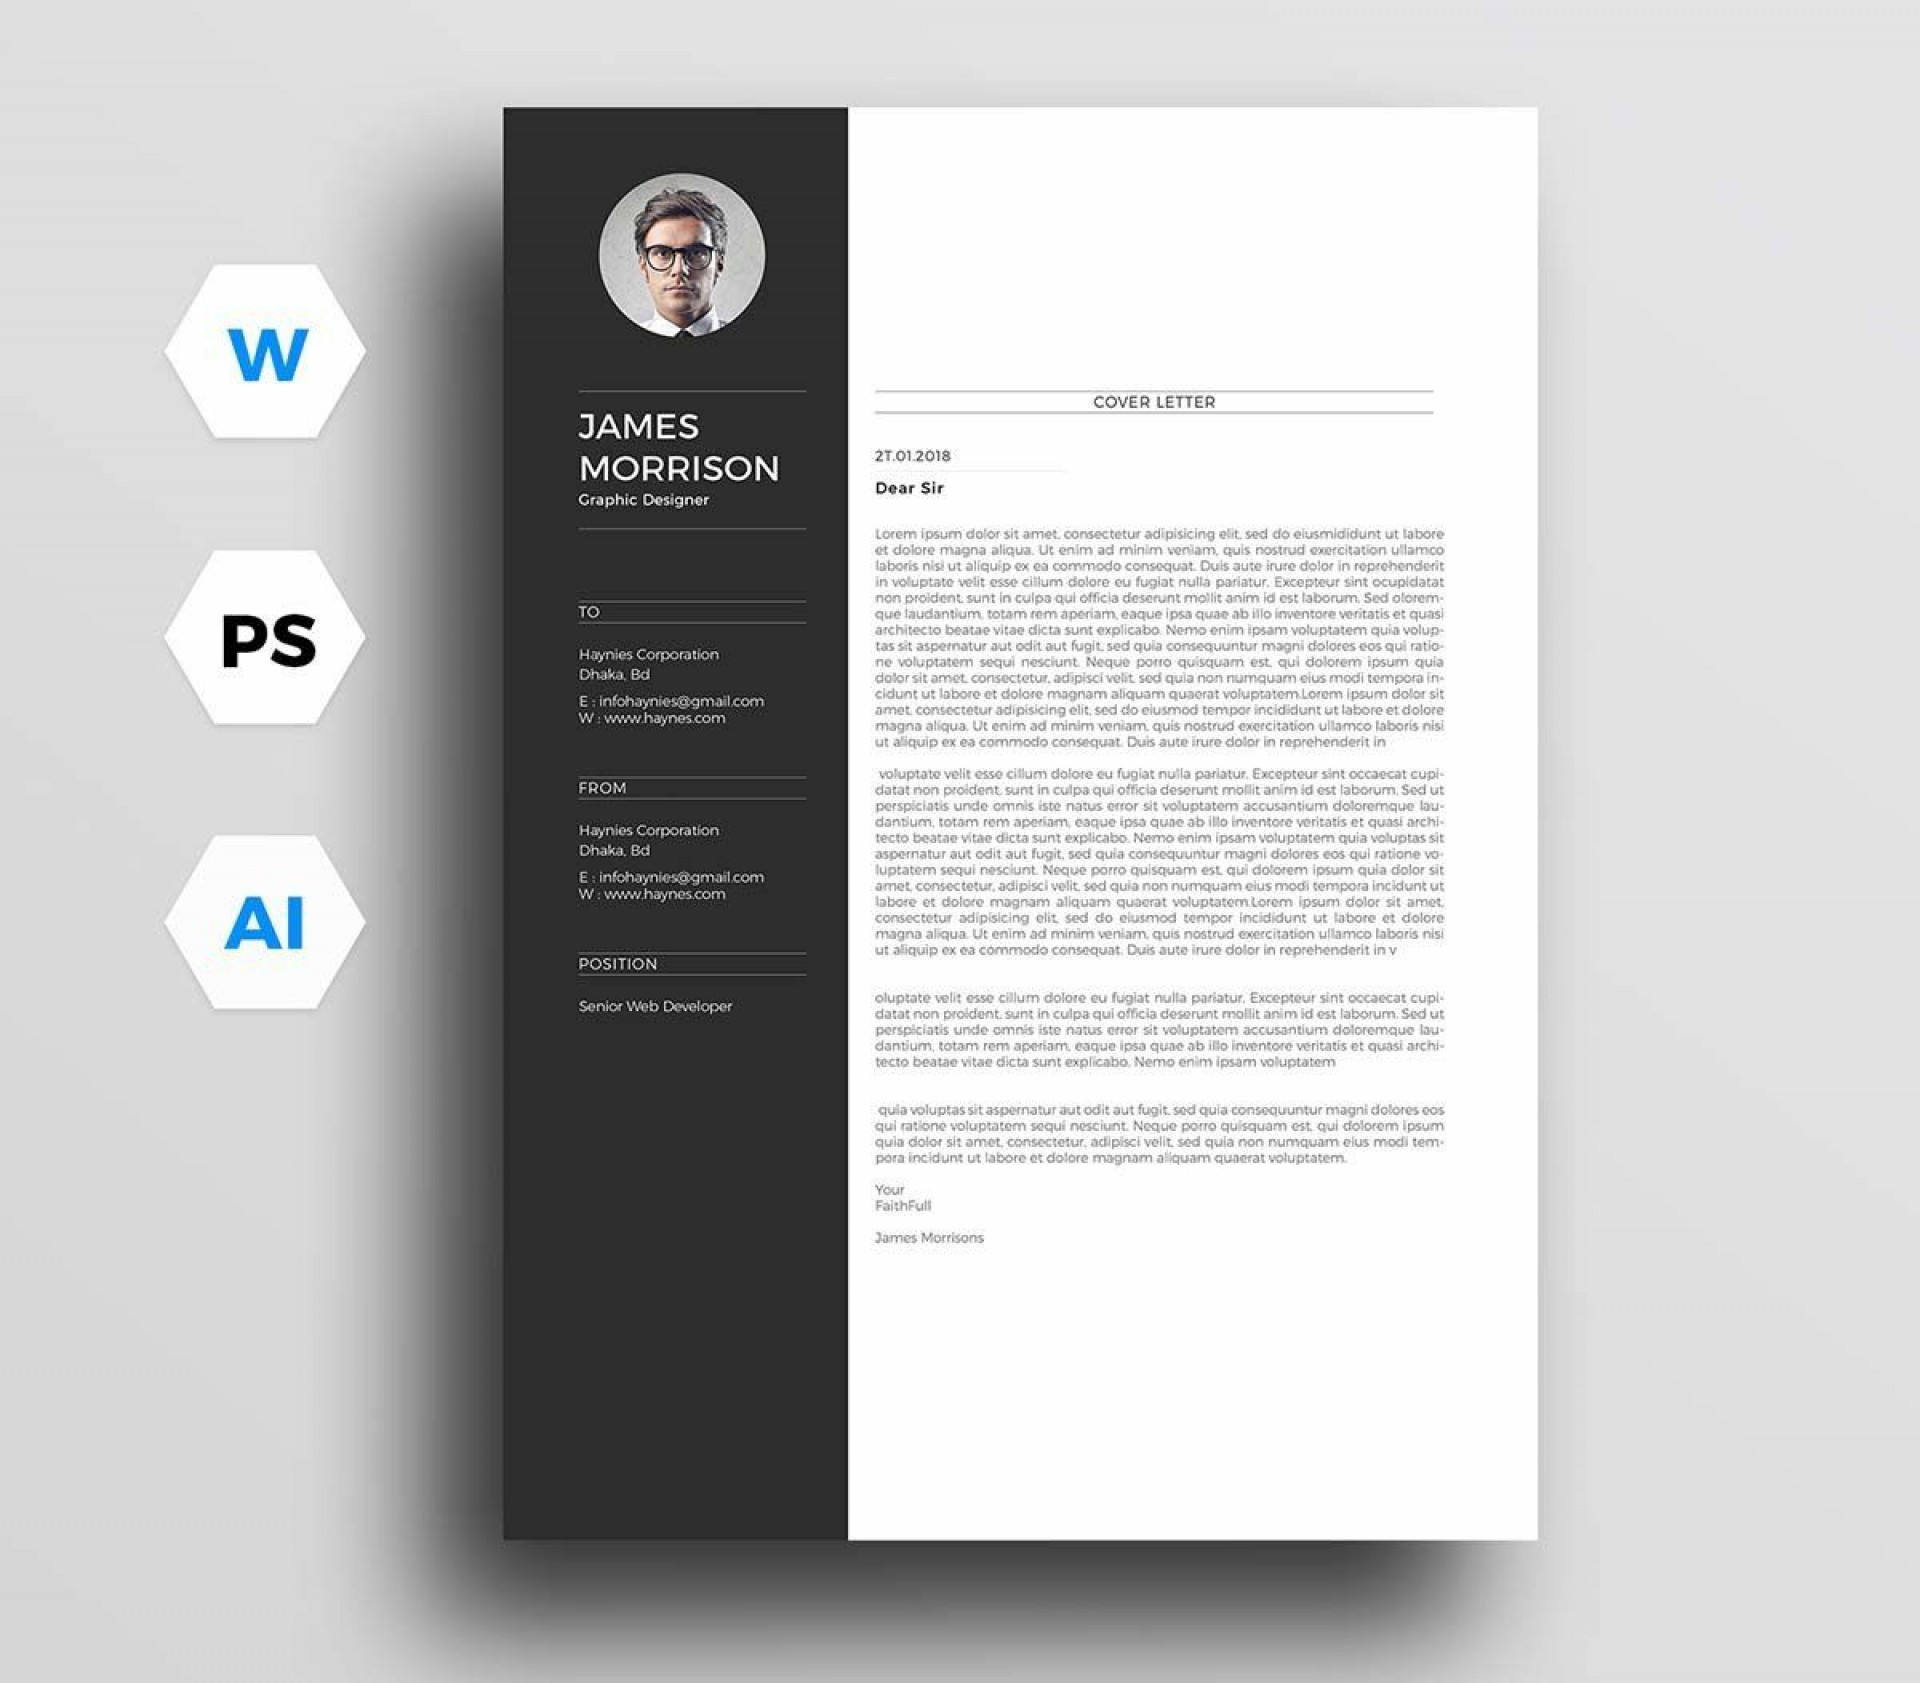 004 Fantastic Resume Cover Letter Template Microsoft Word High Def 1920